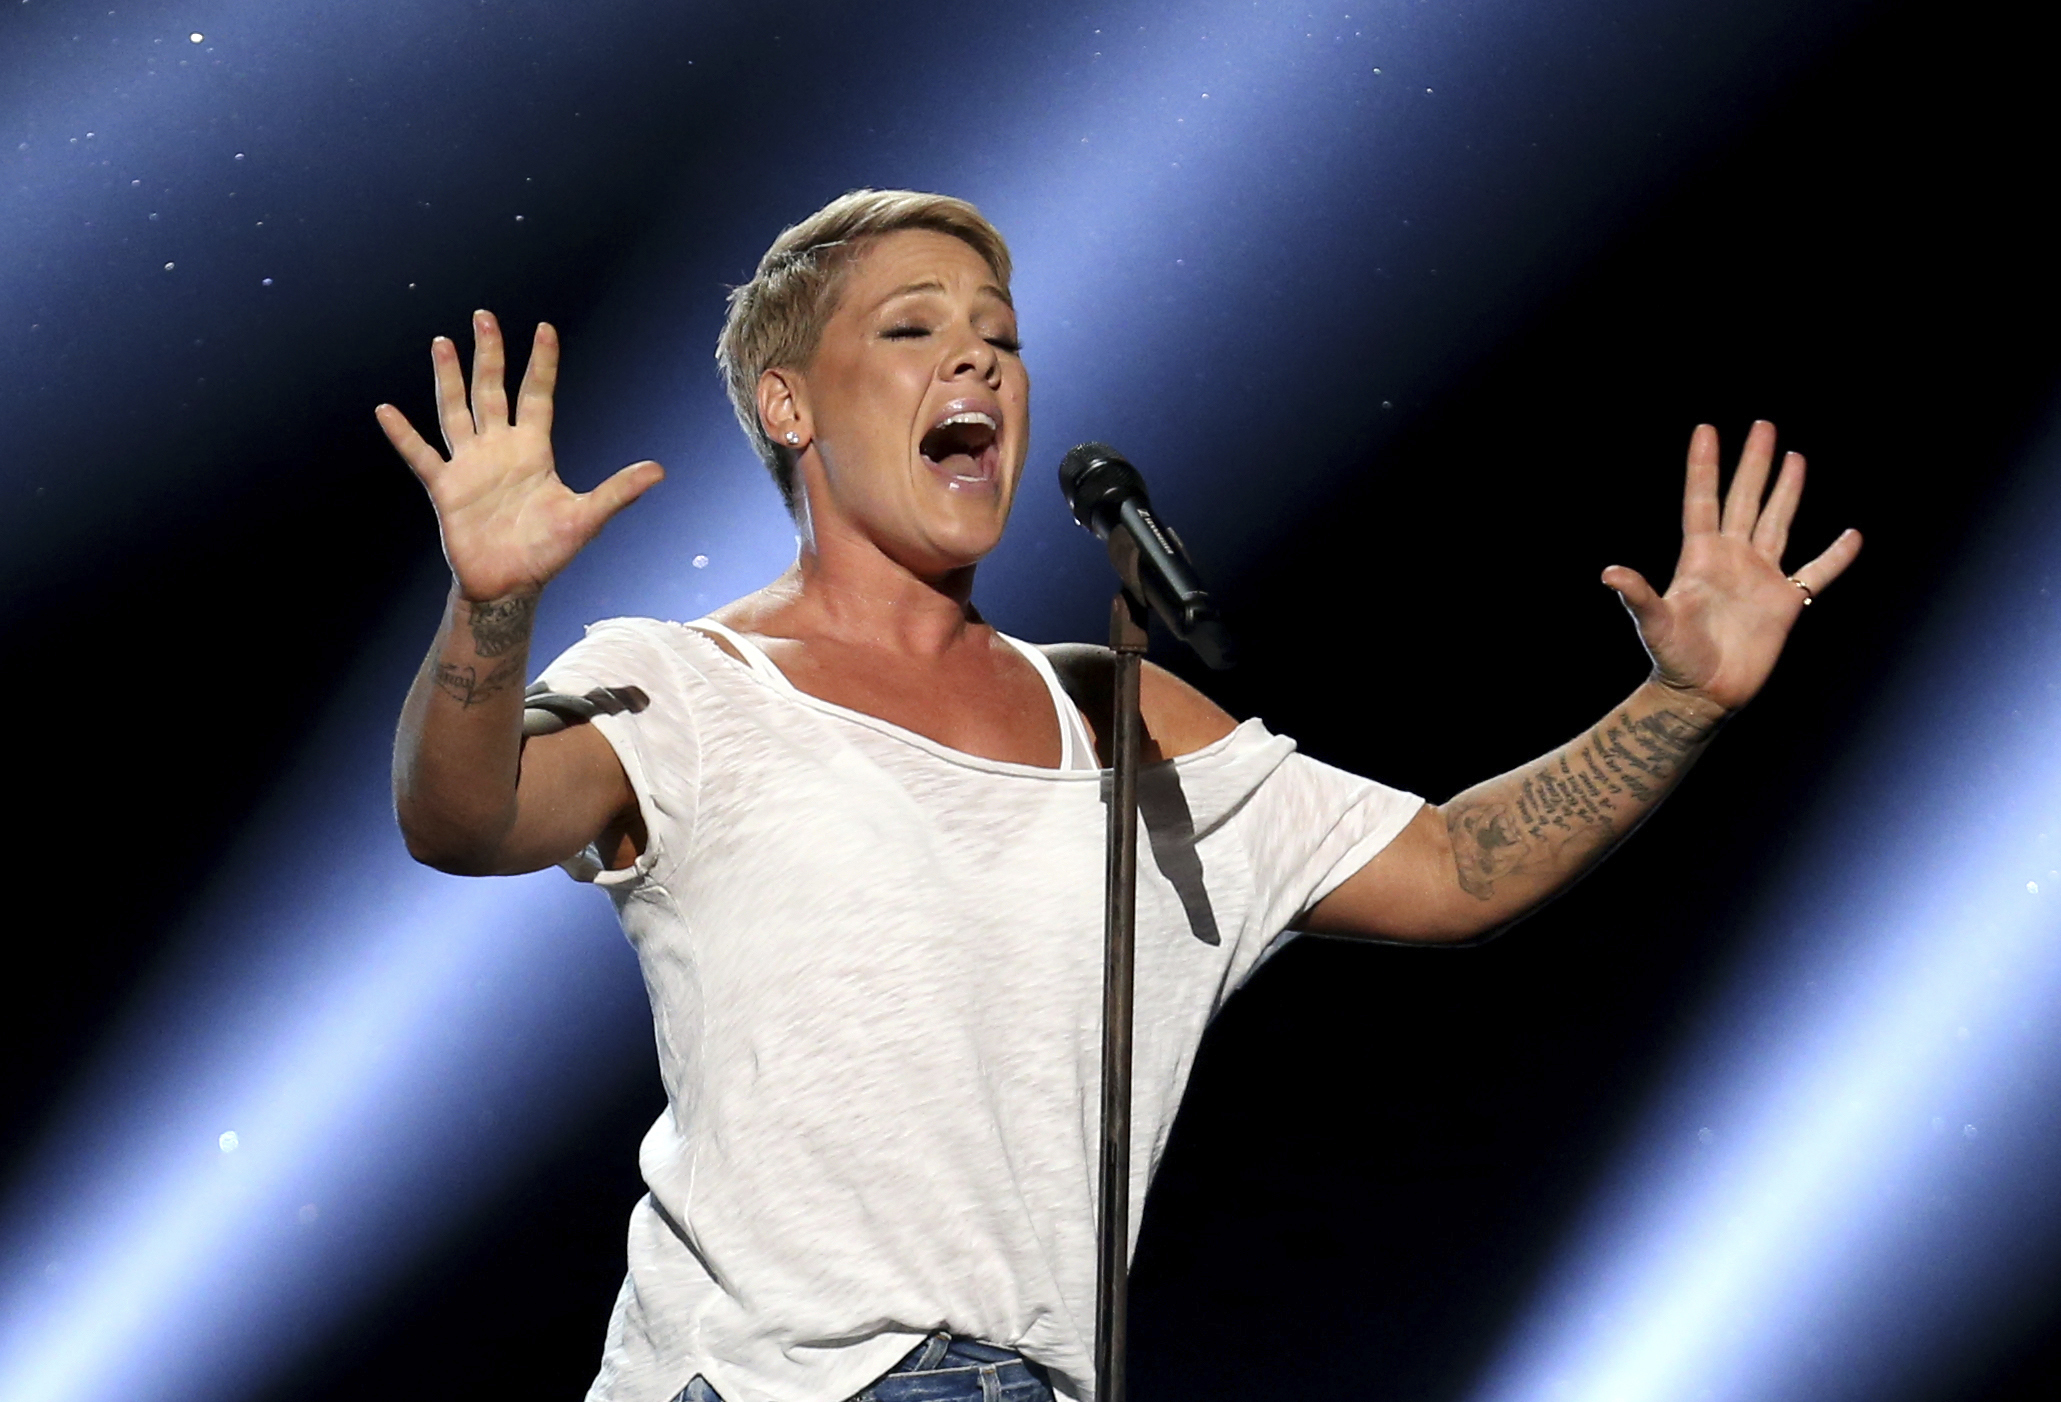 """FILE - In this Jan. 28, 2018, file photo, Pink performs """"Wild Hearts Can´t Be Broken"""" at the 60th annual Grammy Awards at Madison Square Garden in New York. Pink will sing the National Anthem before Super Bowl 52 on Sunday, Feb. 4, and will perform a concert Friday night at NOMADIC LIVE! at The Armory. (Photo by Matt Sayles/Invision/AP, File)"""